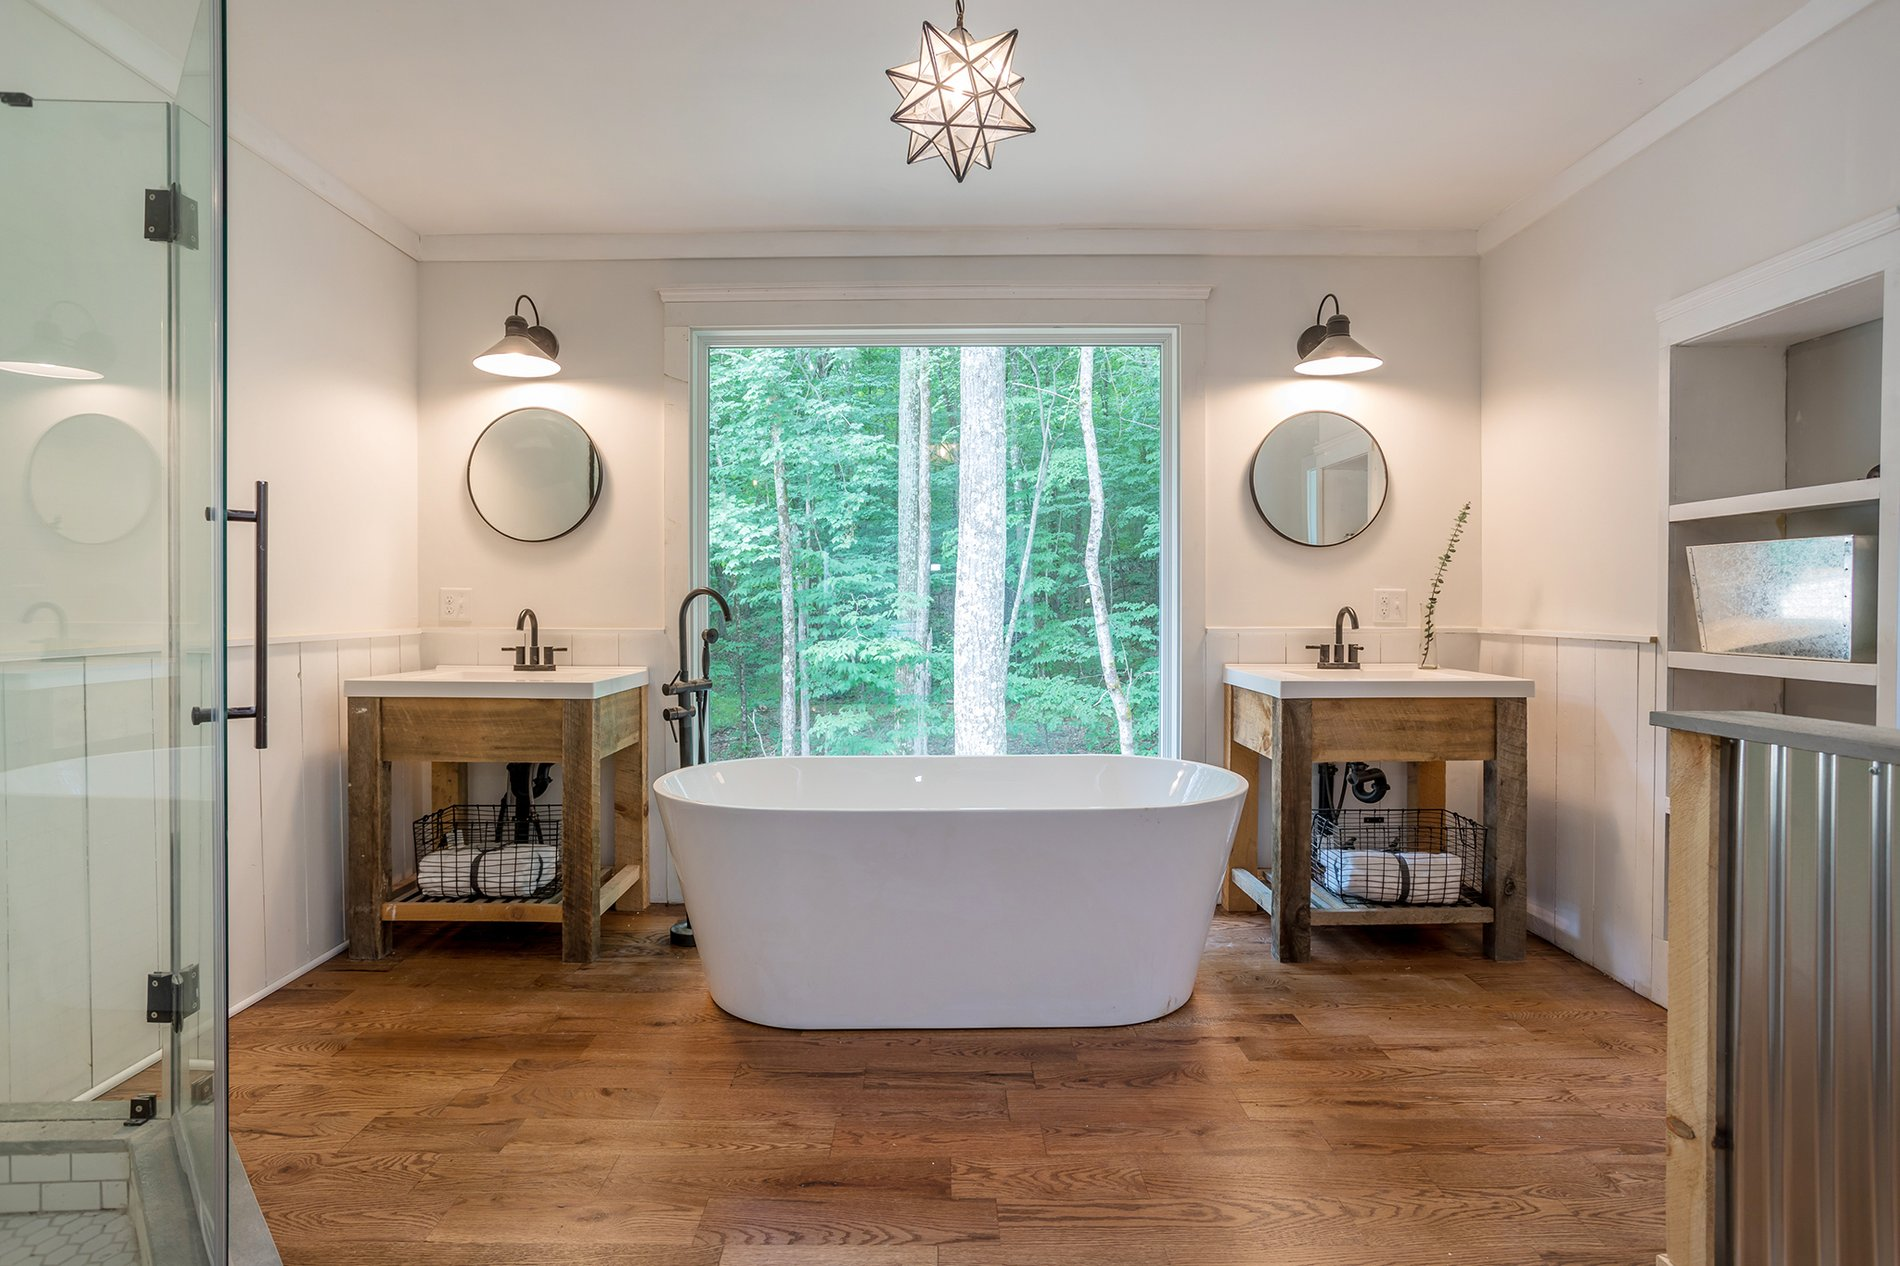 Rustic farmhouse master bathroom with a soaking tub and double sinks with custom timber bases.